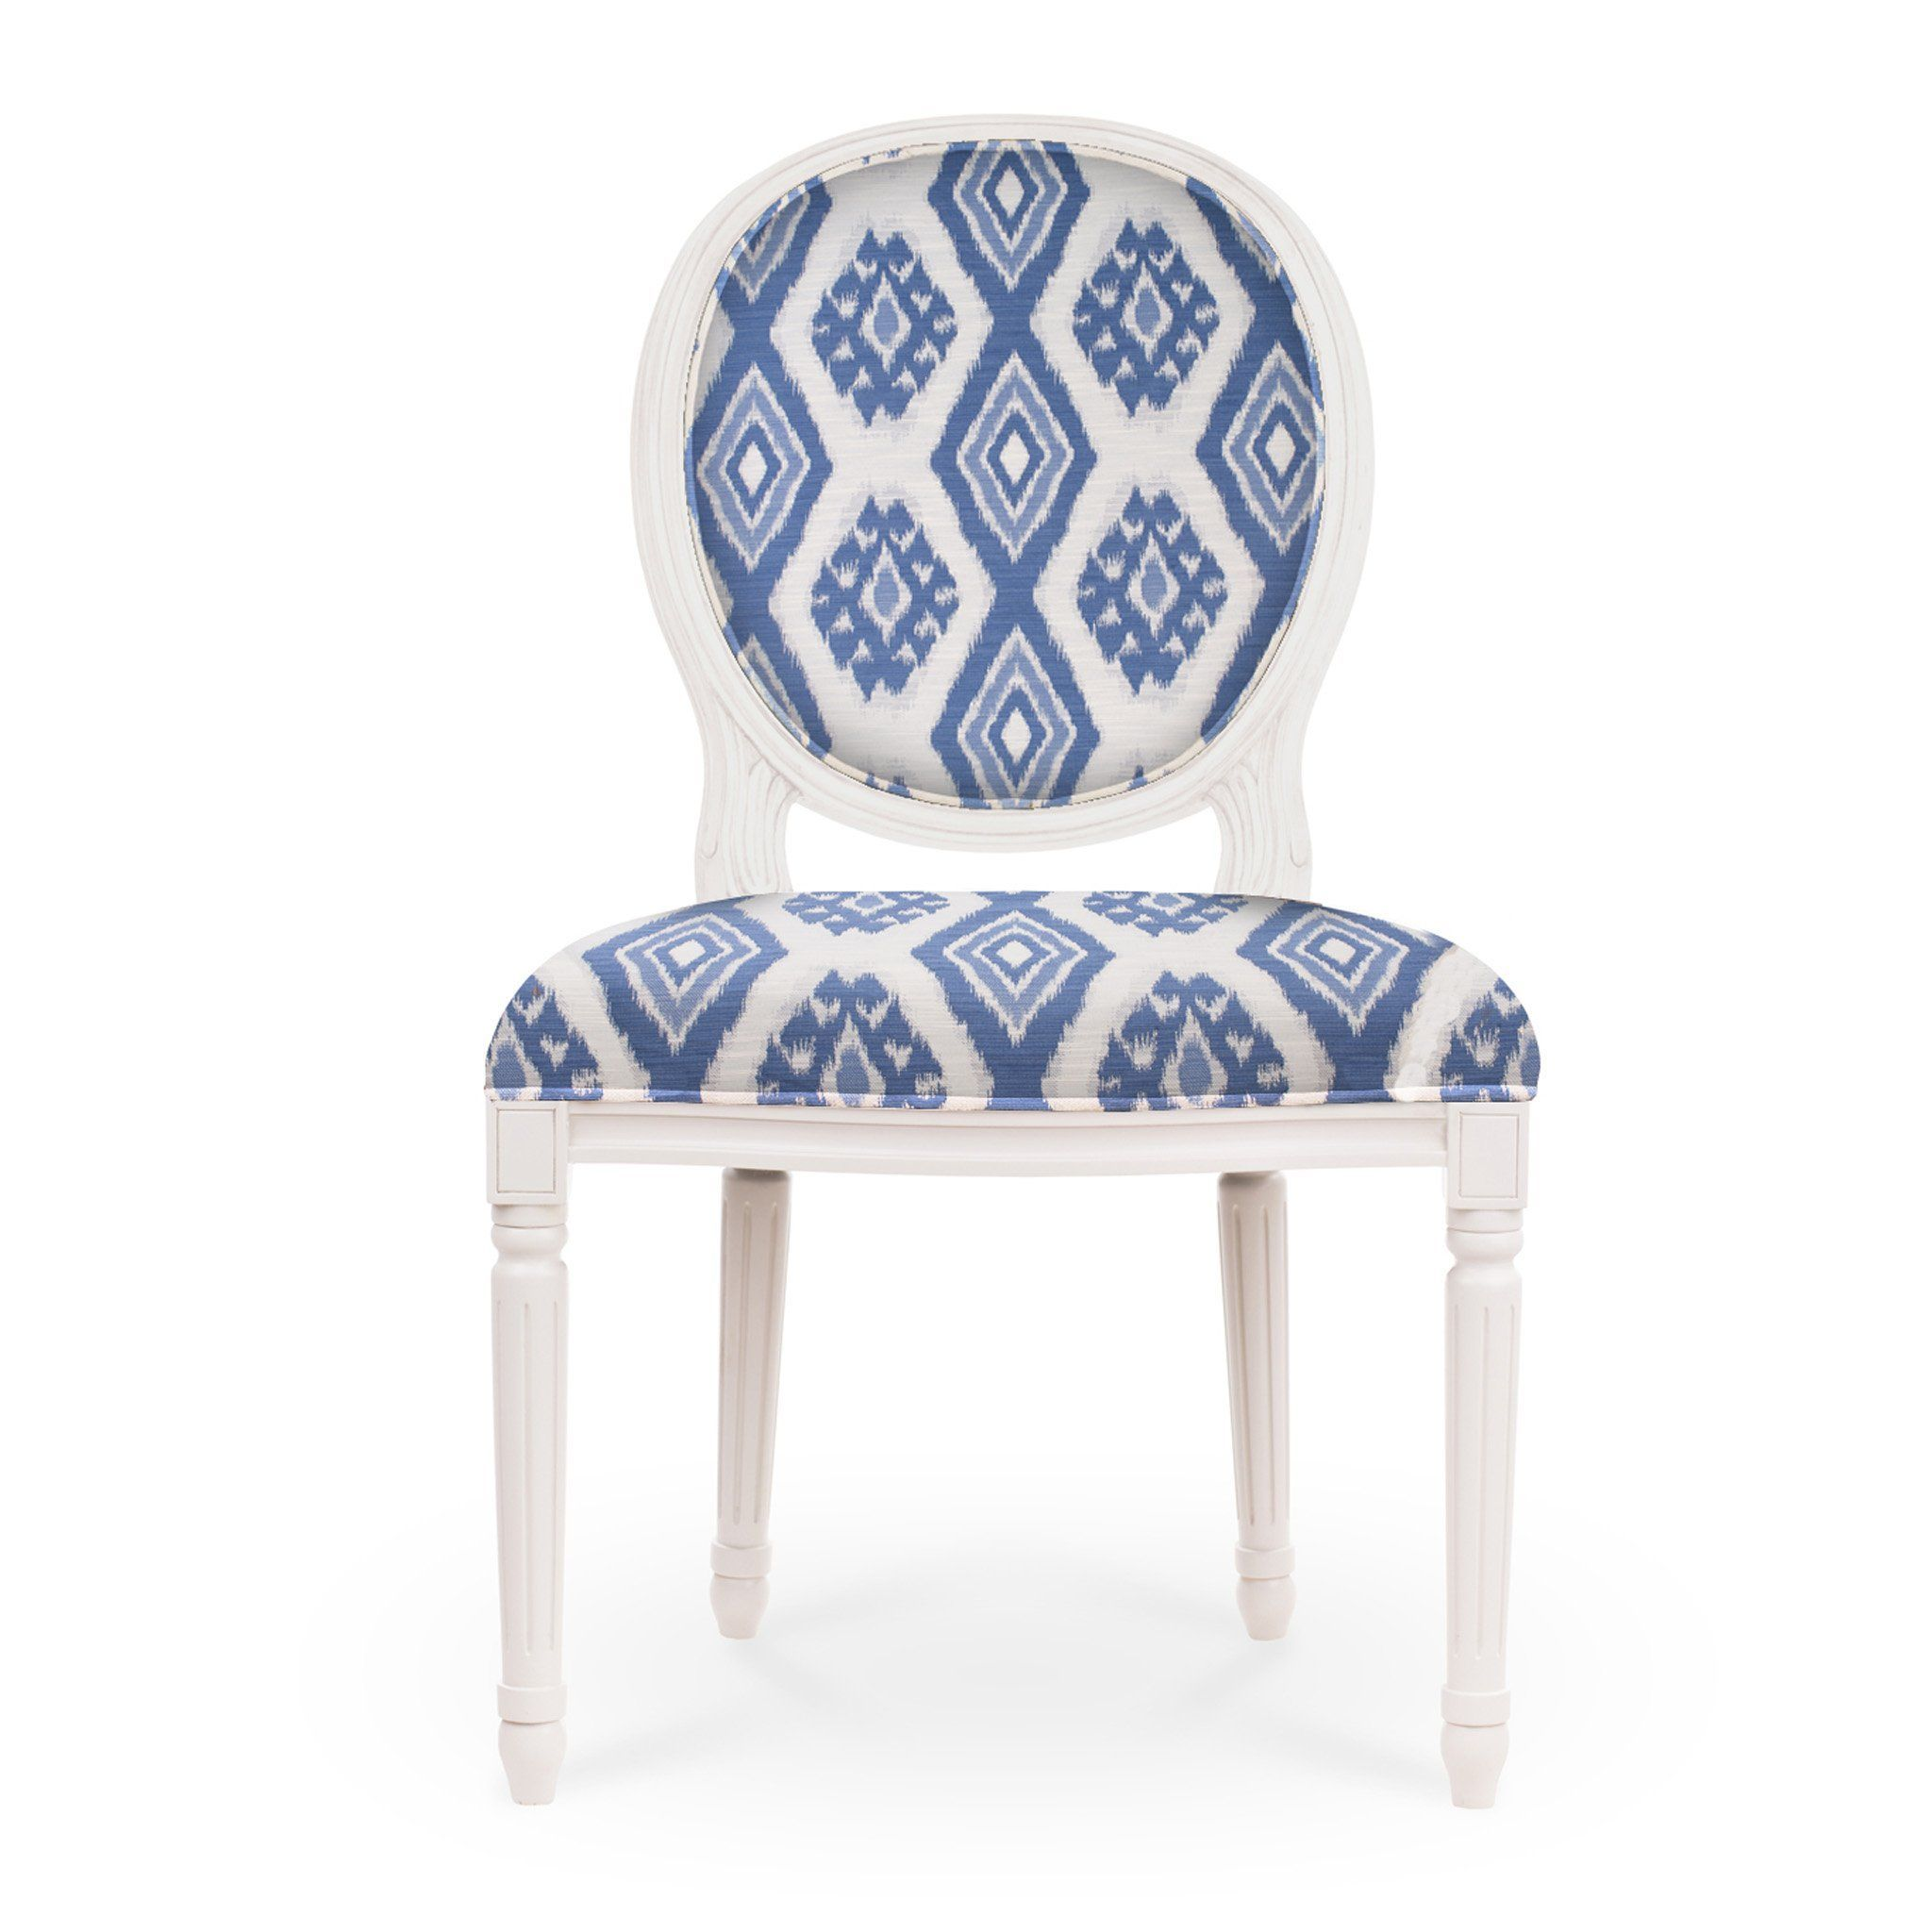 Regine louis xvi side chair white finish blue woven ikat fabric